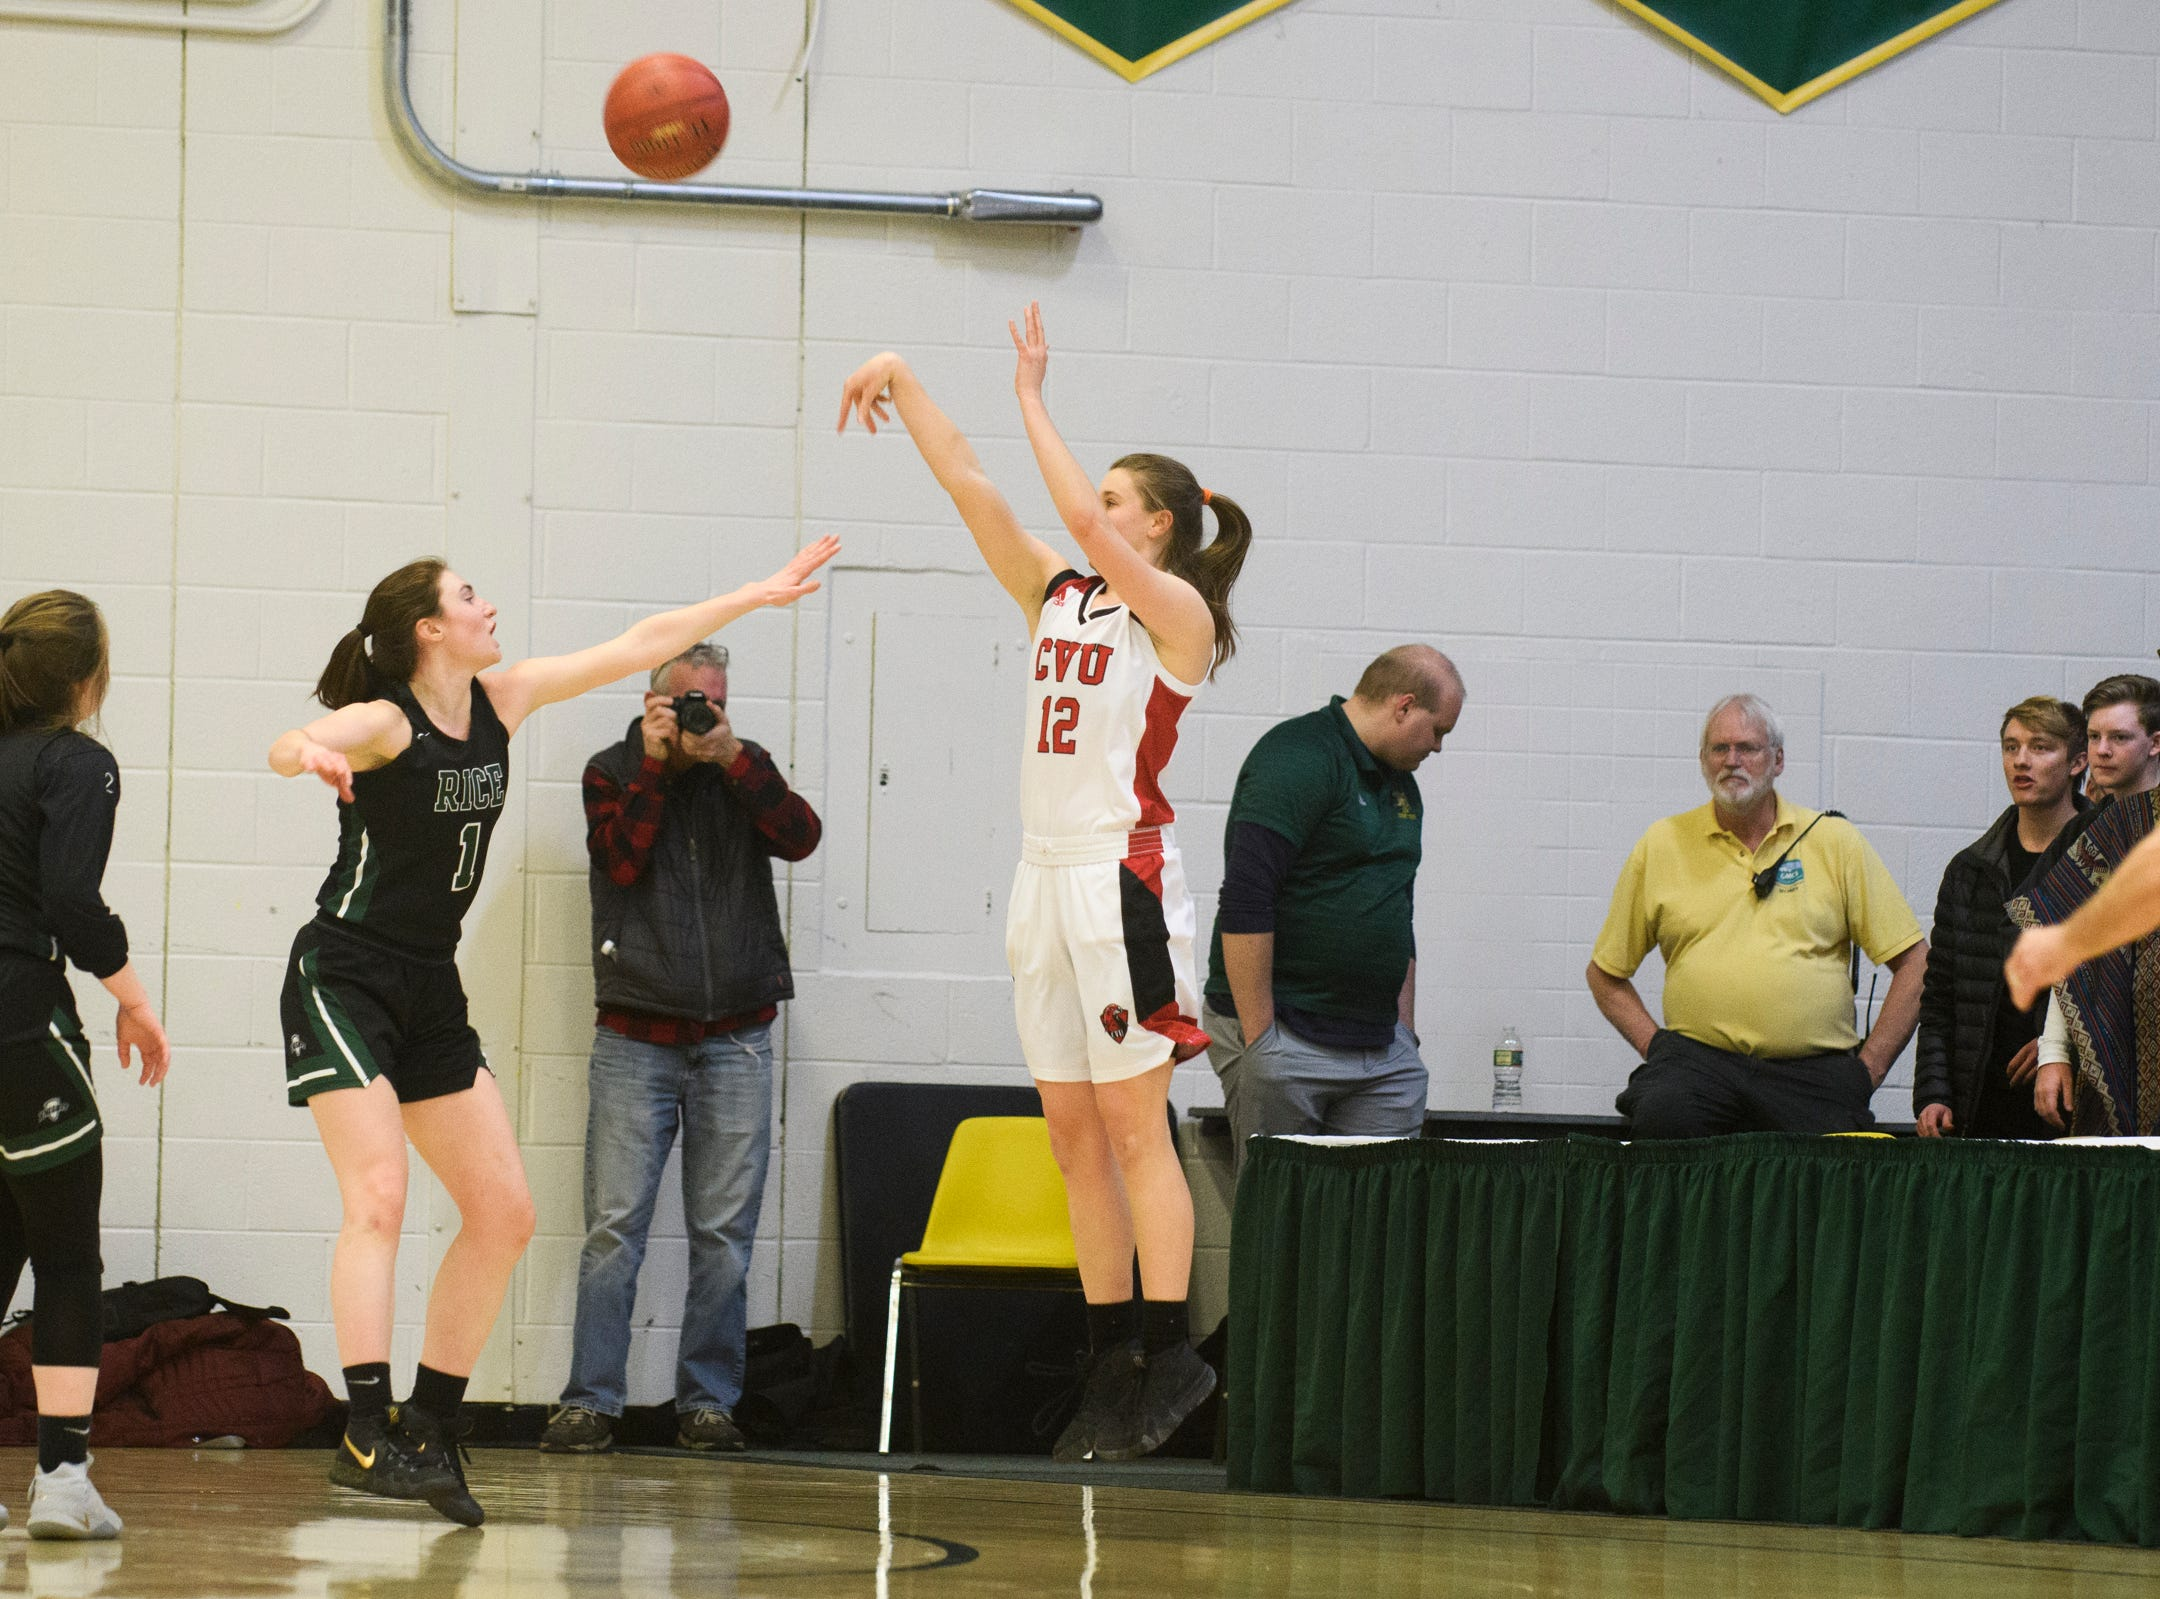 CVU's Harper Mead (12) shoots a three pointer during the girls semifinal basketball game between the Rice Green Knights and the Champlain Valley Union Redhawks at Patrick Gym on Wednesday nigh March 6, 2019 in Burlington, Vermont.